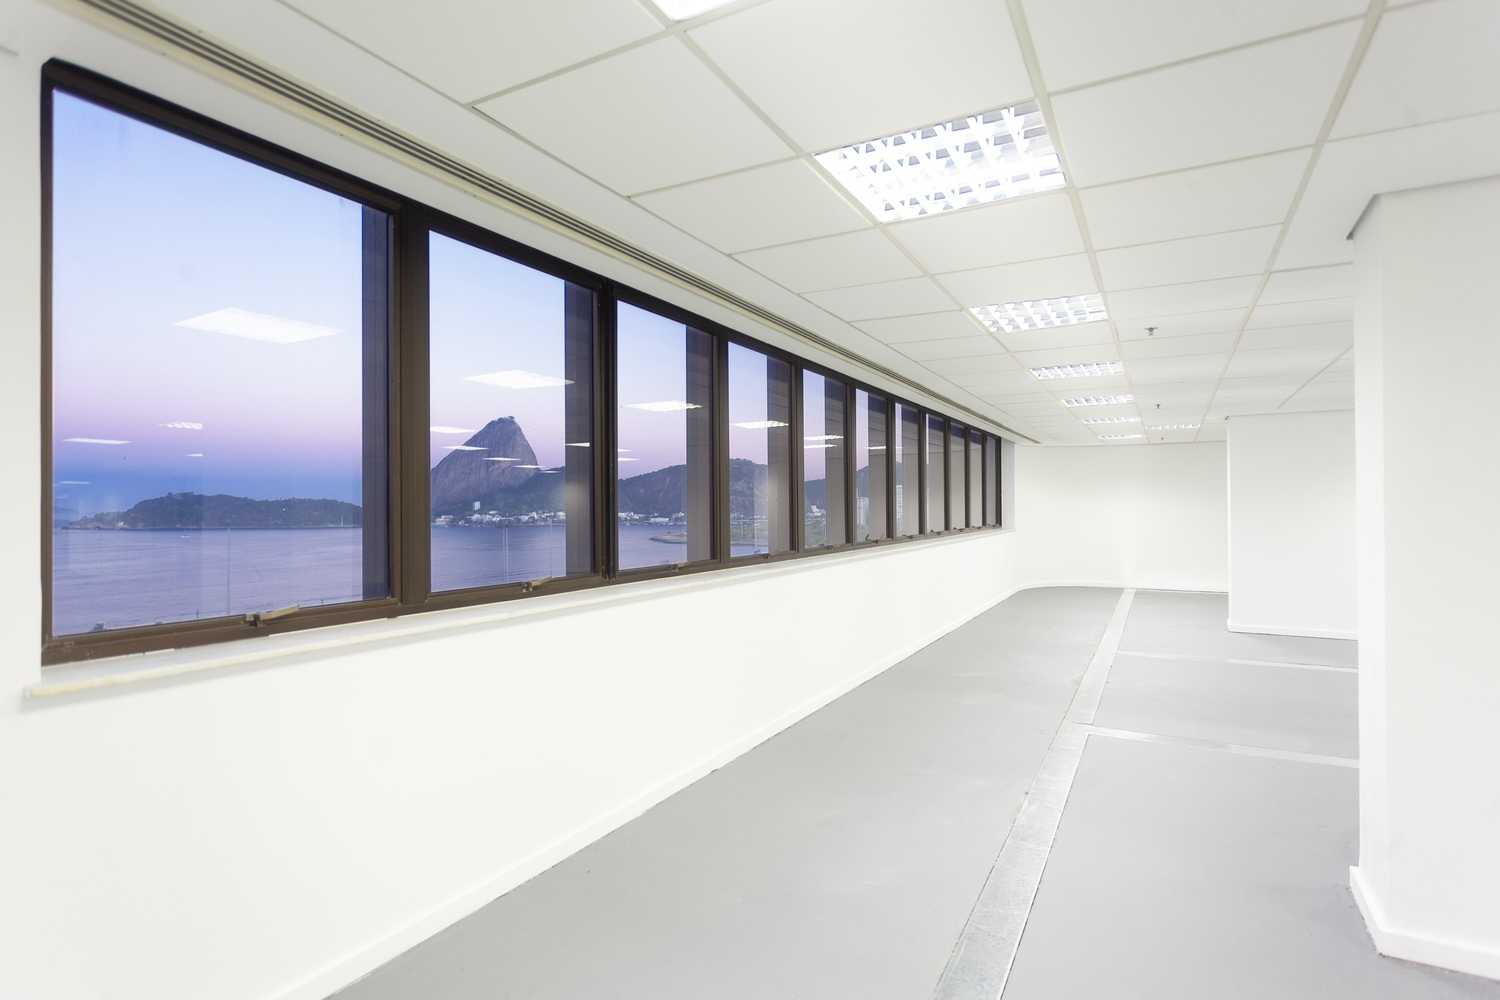 A large room that has white columns with a row of windows that shows a view of the harbor.